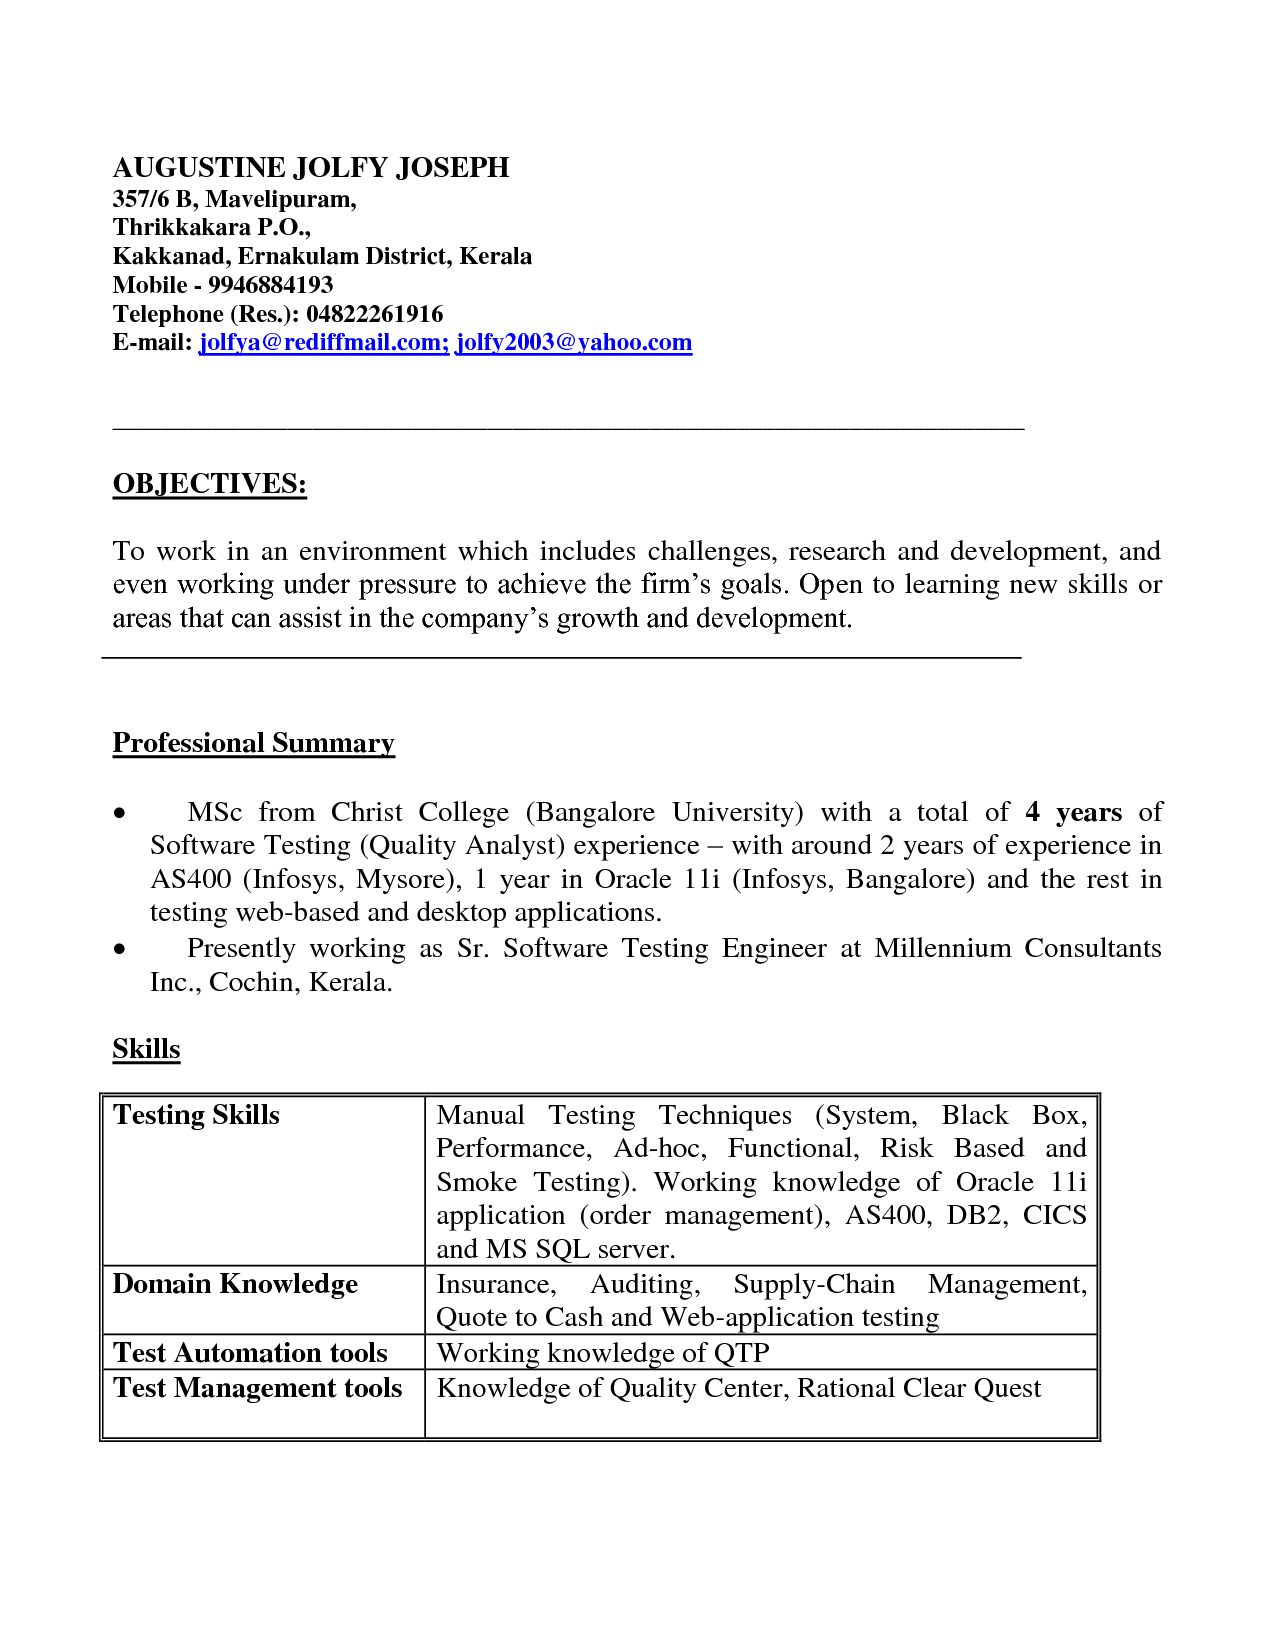 Quotes For Resumes. examples skills great job resumes. love what u ...